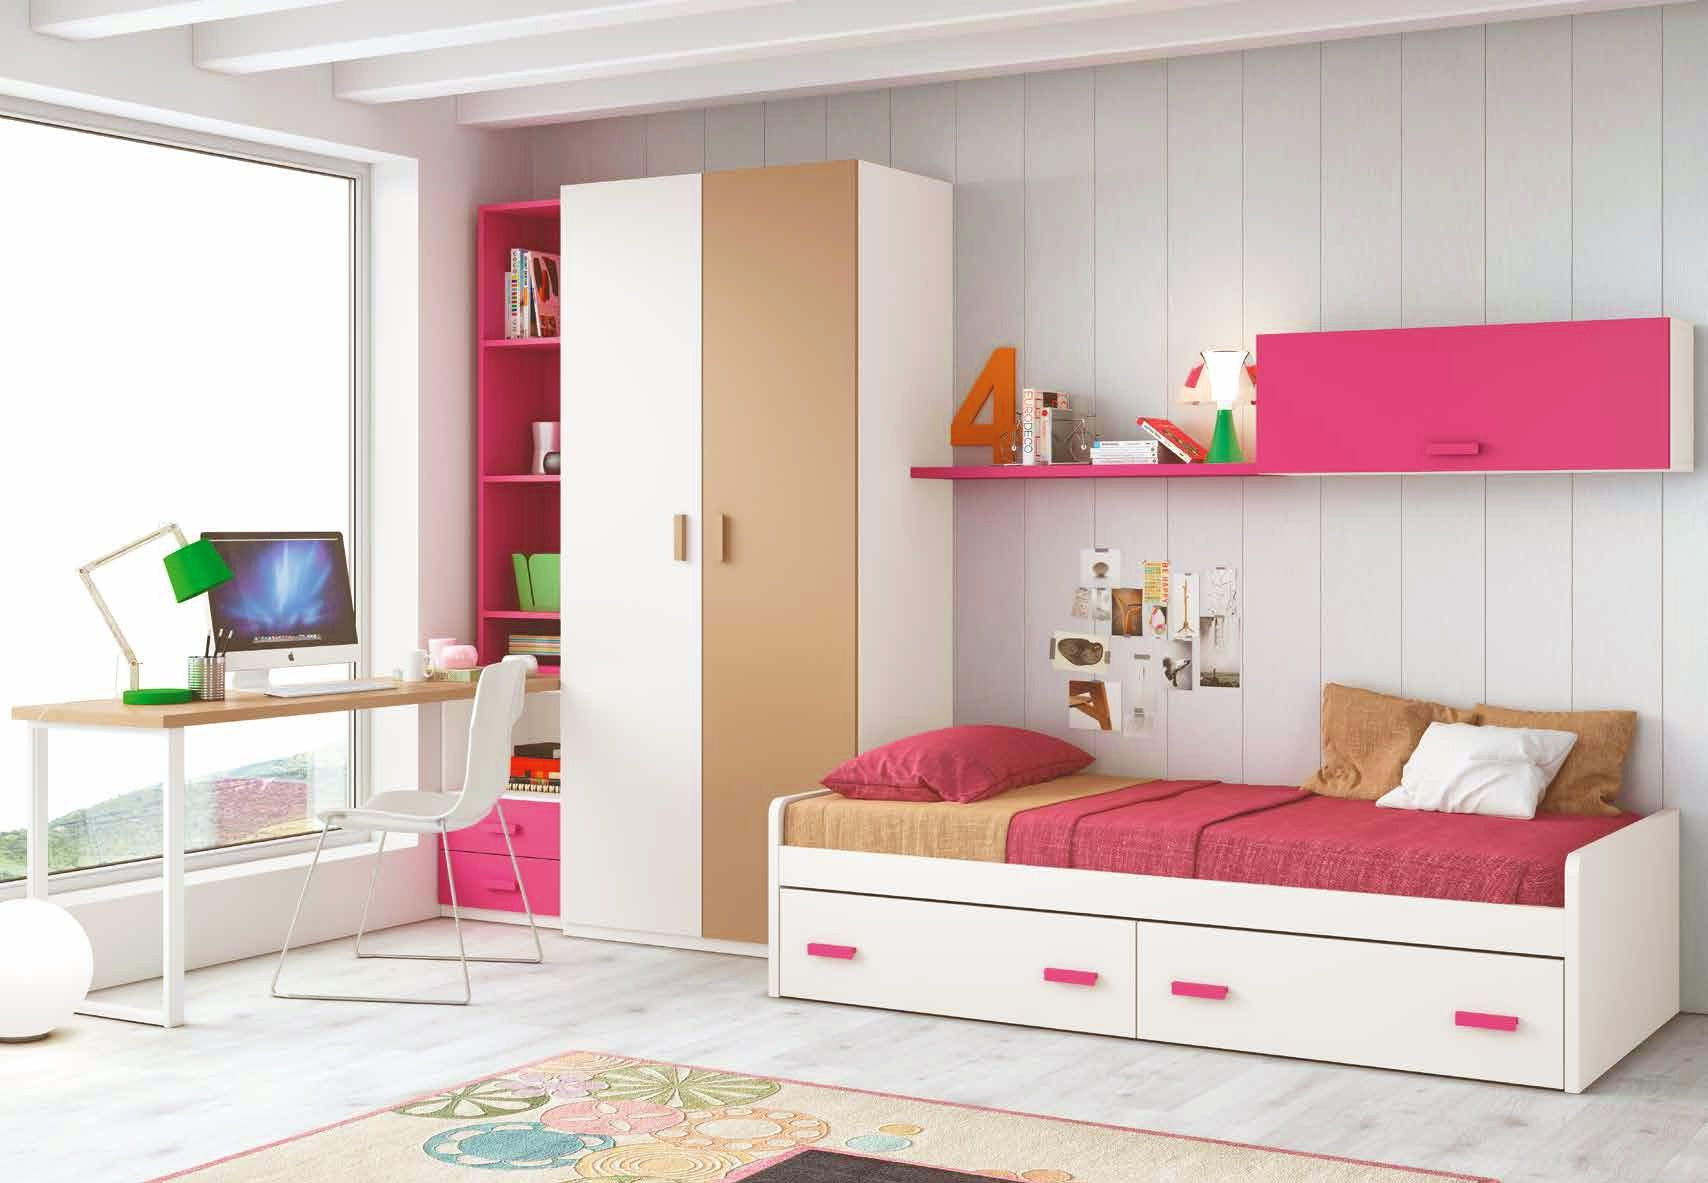 Image Result For Chambre Ado Fille 12 Ans Idees Deco Chambre